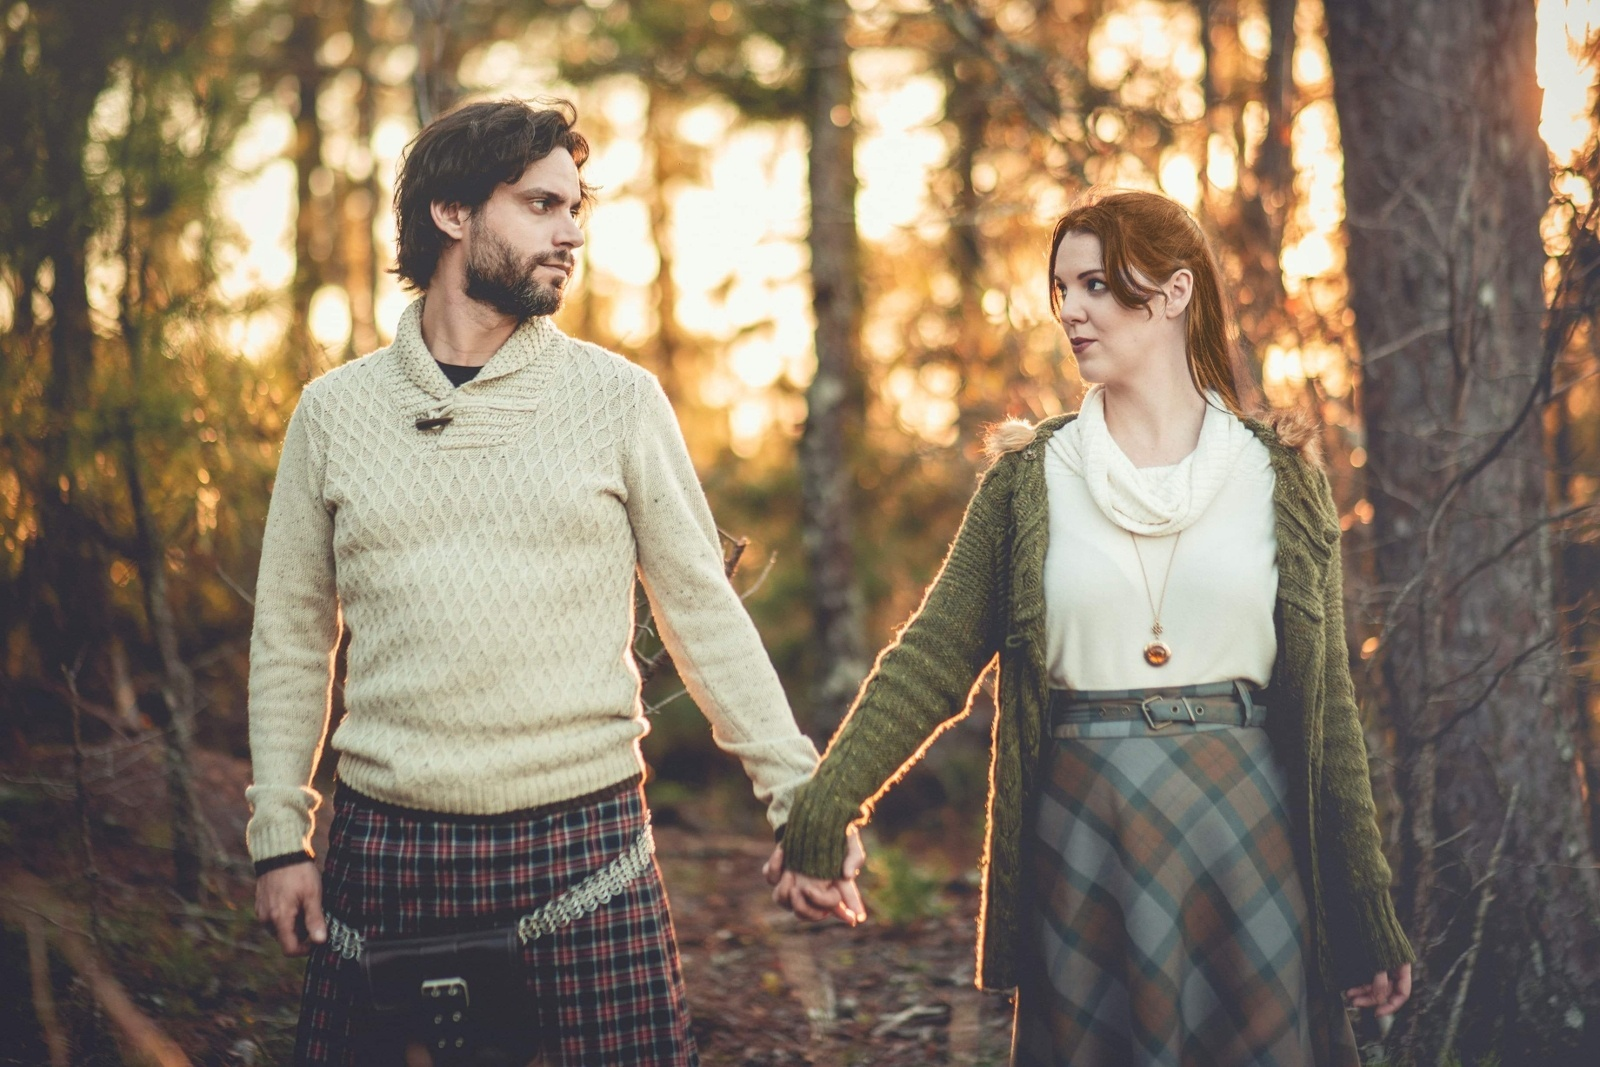 Outlander Engagement Roger and Brianna. Photographer - Foto Mike. Models - The Lady Nerd and Ian